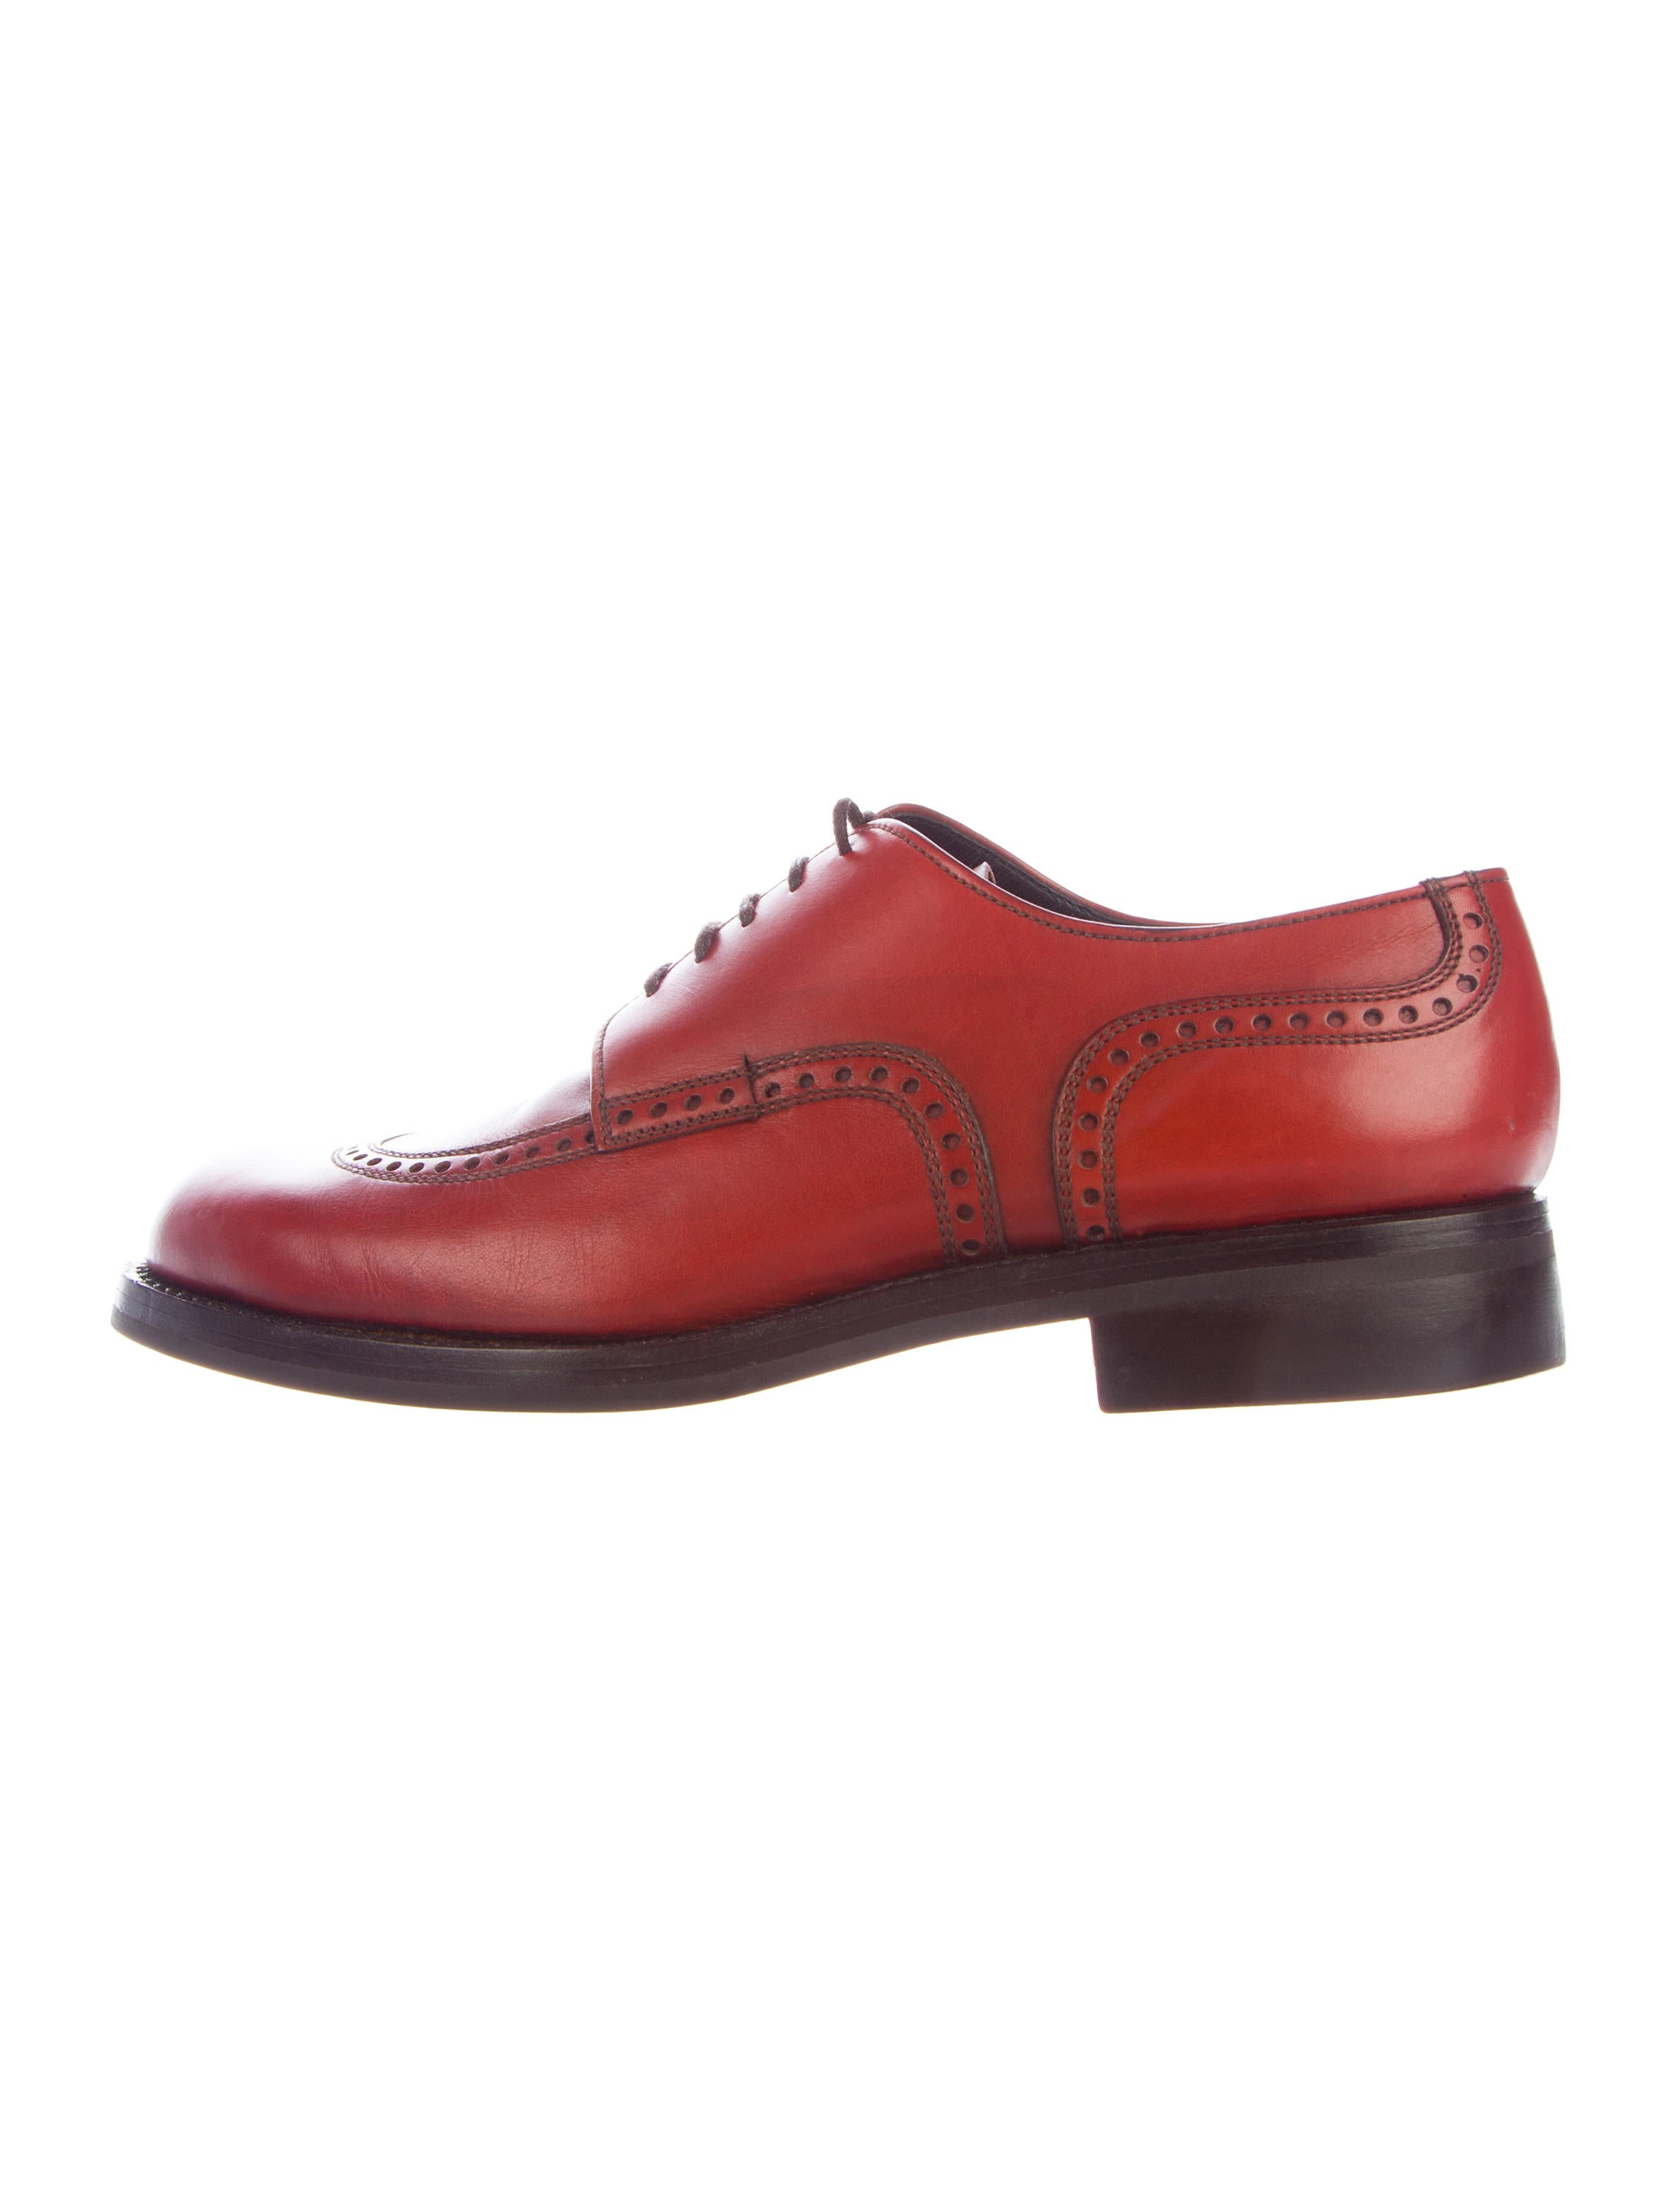 prada leather derby shoes shoes pra164561 the realreal